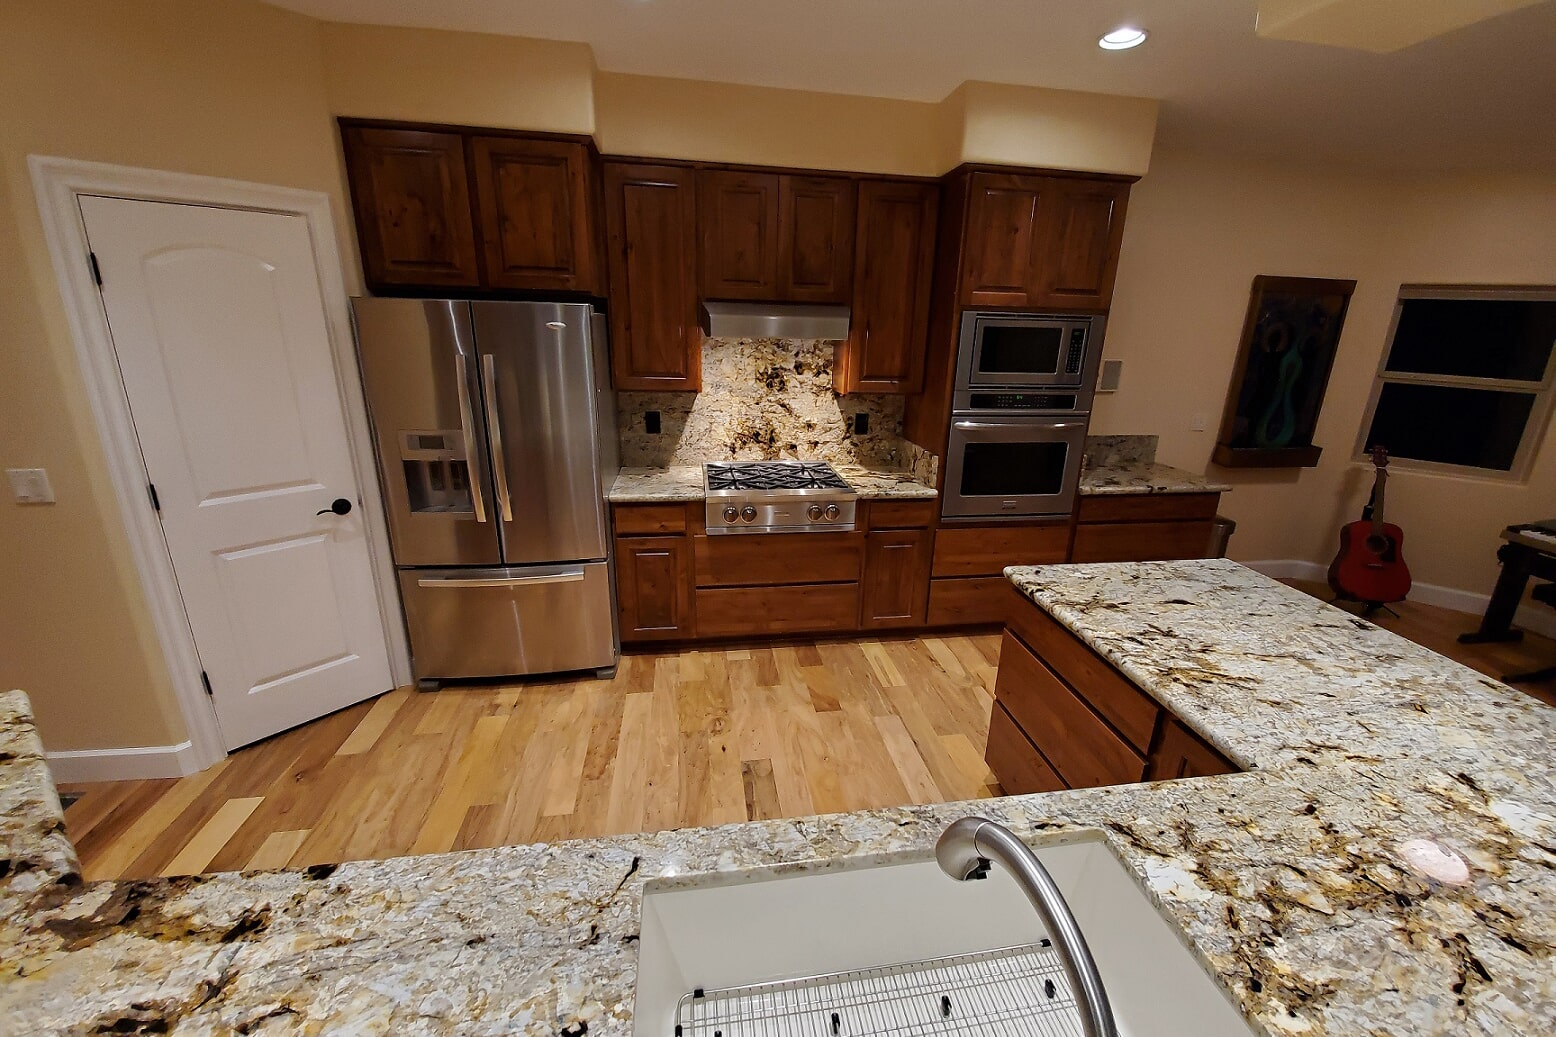 Gorgeous countertop and backsplash install in Chino Valley, AZ from Prescott Flooring Brokers